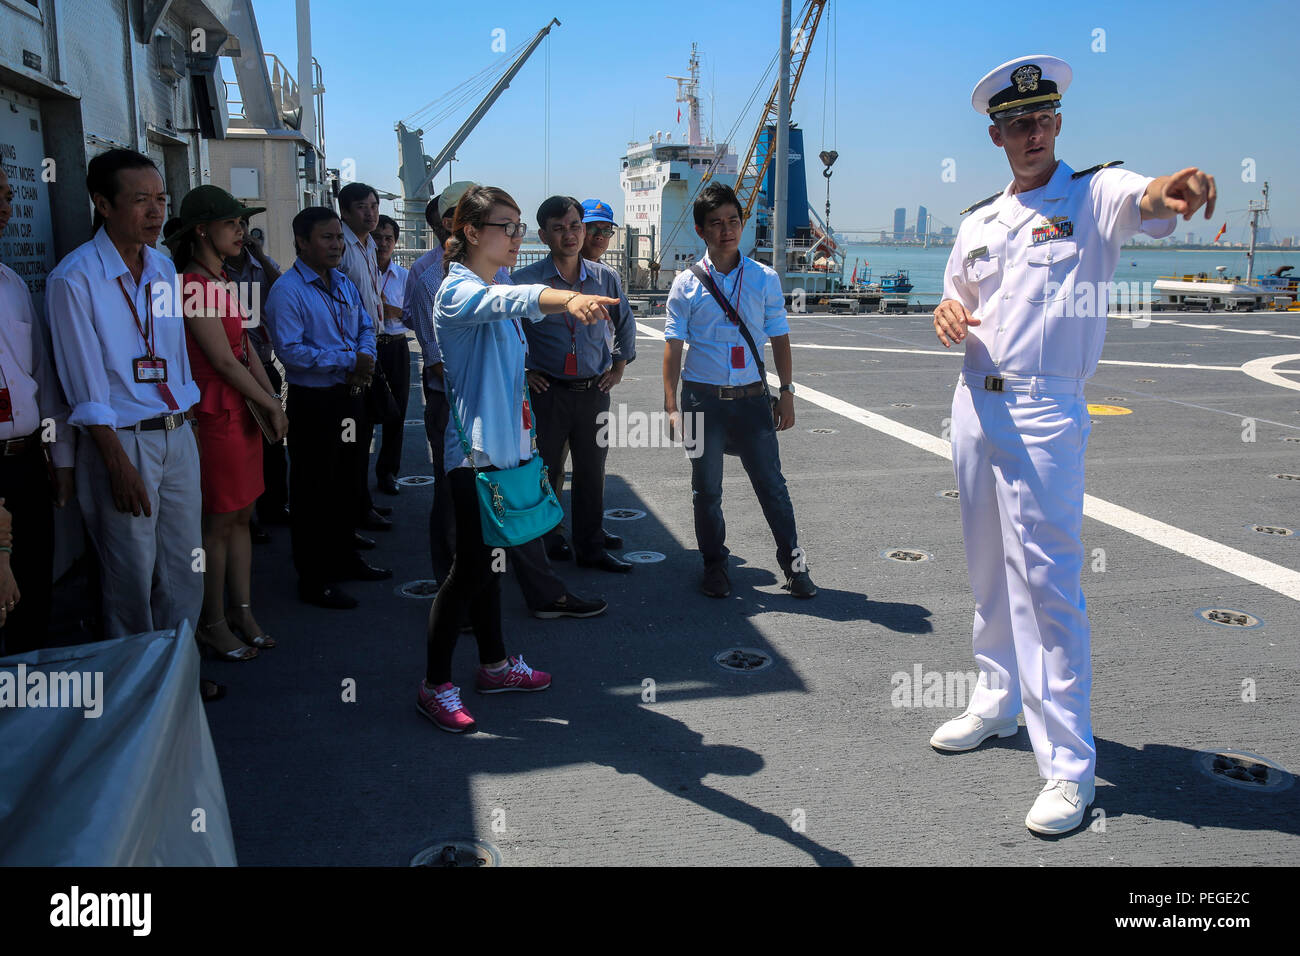 150818-M-GO800-062 DA NANG, Vietnam (Aug. 18, 2015) – Lt. j.g. Mark Roach explains to local Vietnamese officials the function of the flight deck aboard the Military Sealift Command joint high speed vessel USNS Millinocket (JHSV 3) during a ship tour Aug. 18. Task Force Forager, embarked aboard the Millinocket  is serving as the secondary platform for Pacific Partnership, led by an expeditionary command element from the Navy's 30th Naval Construction Regiment (30 NCR) from Port Hueneme, Calif. Now in its 10th iteration, Pacific Partnership is the largest annual multilateral humanitarian assista - Stock Image